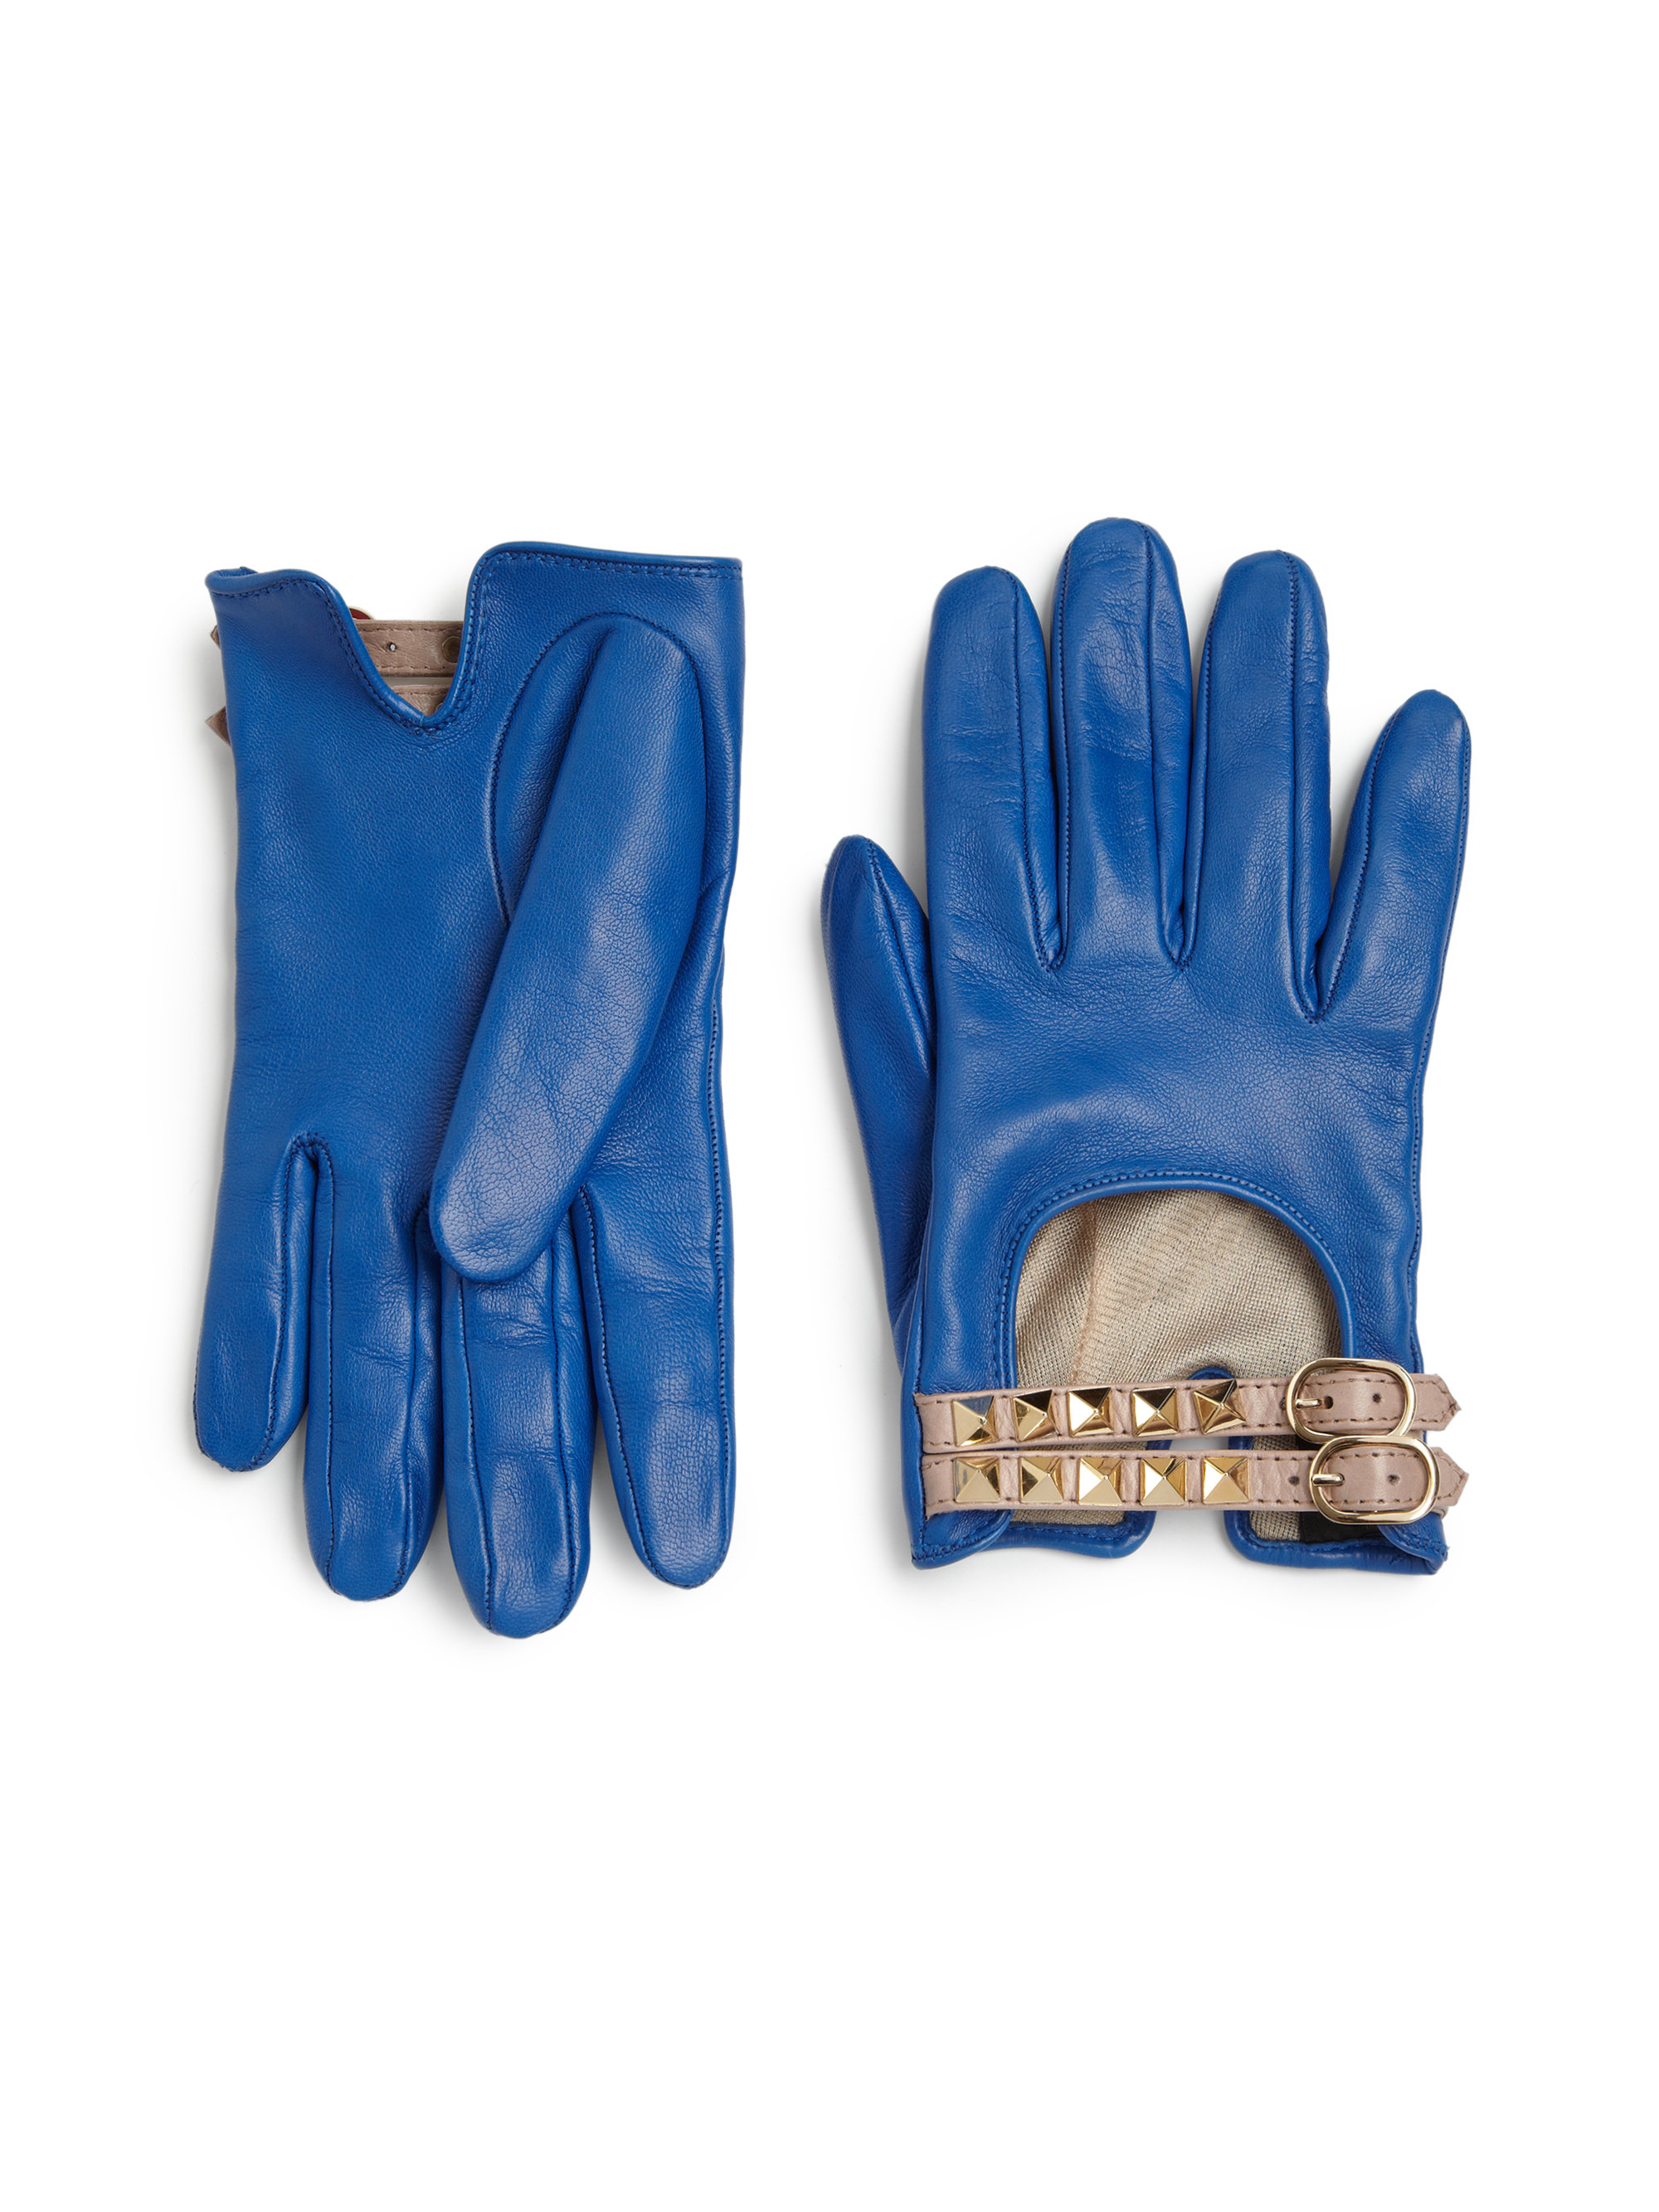 Ladies leather gloves blue - Gallery Previously Sold At Saks Fifth Avenue Women S Leather Gloves